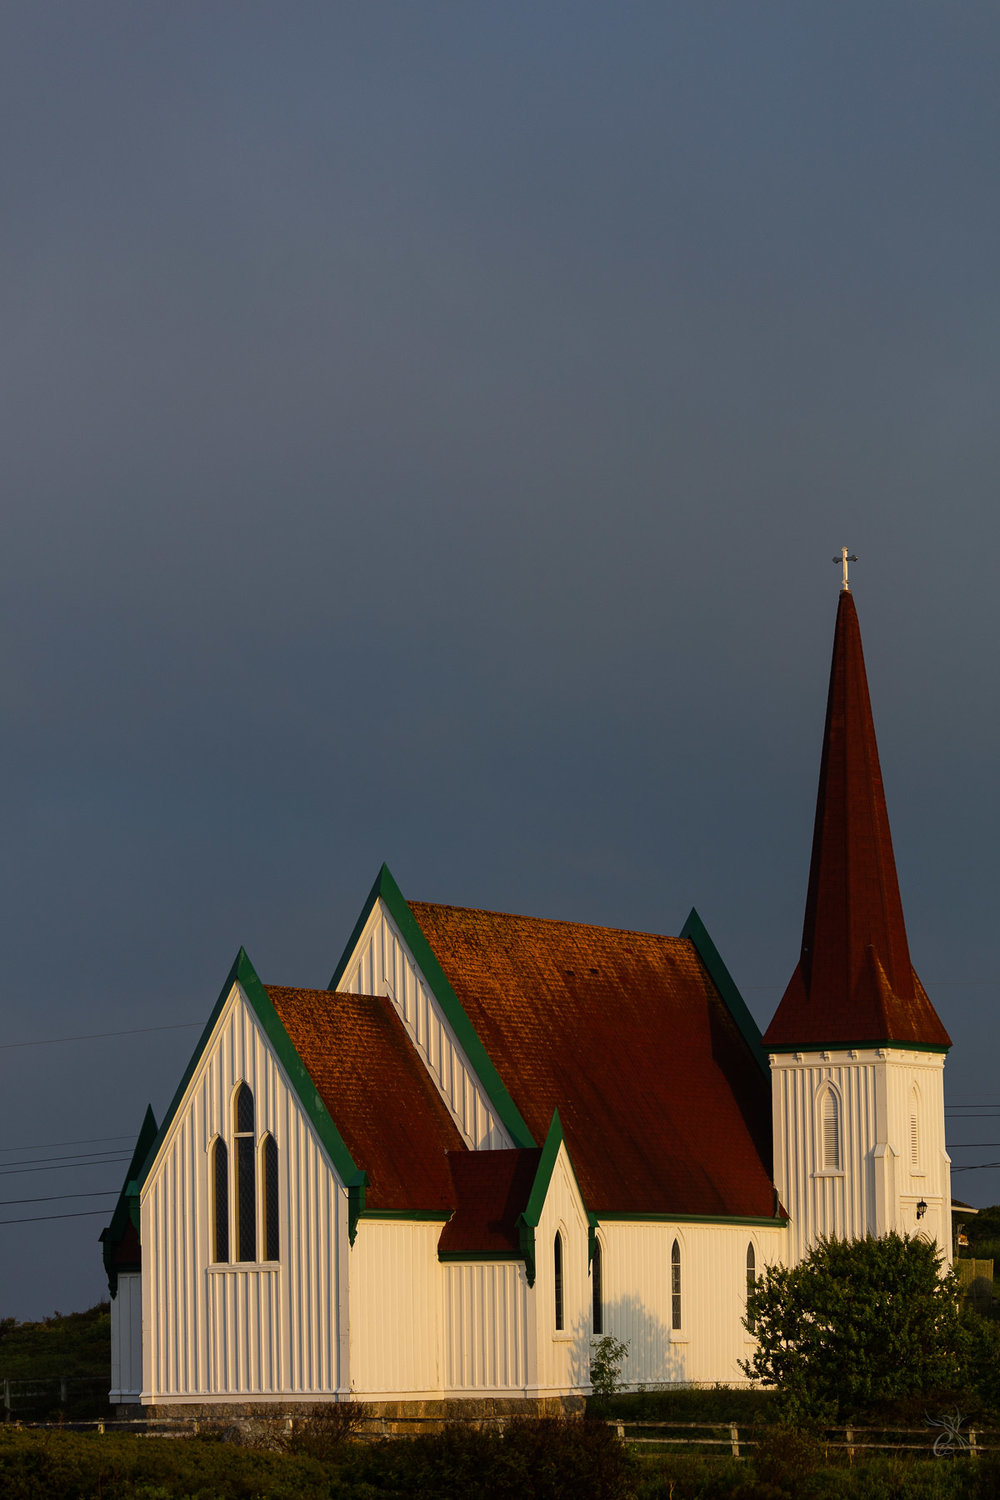 Nova Scotia: St. John's Anglican Church